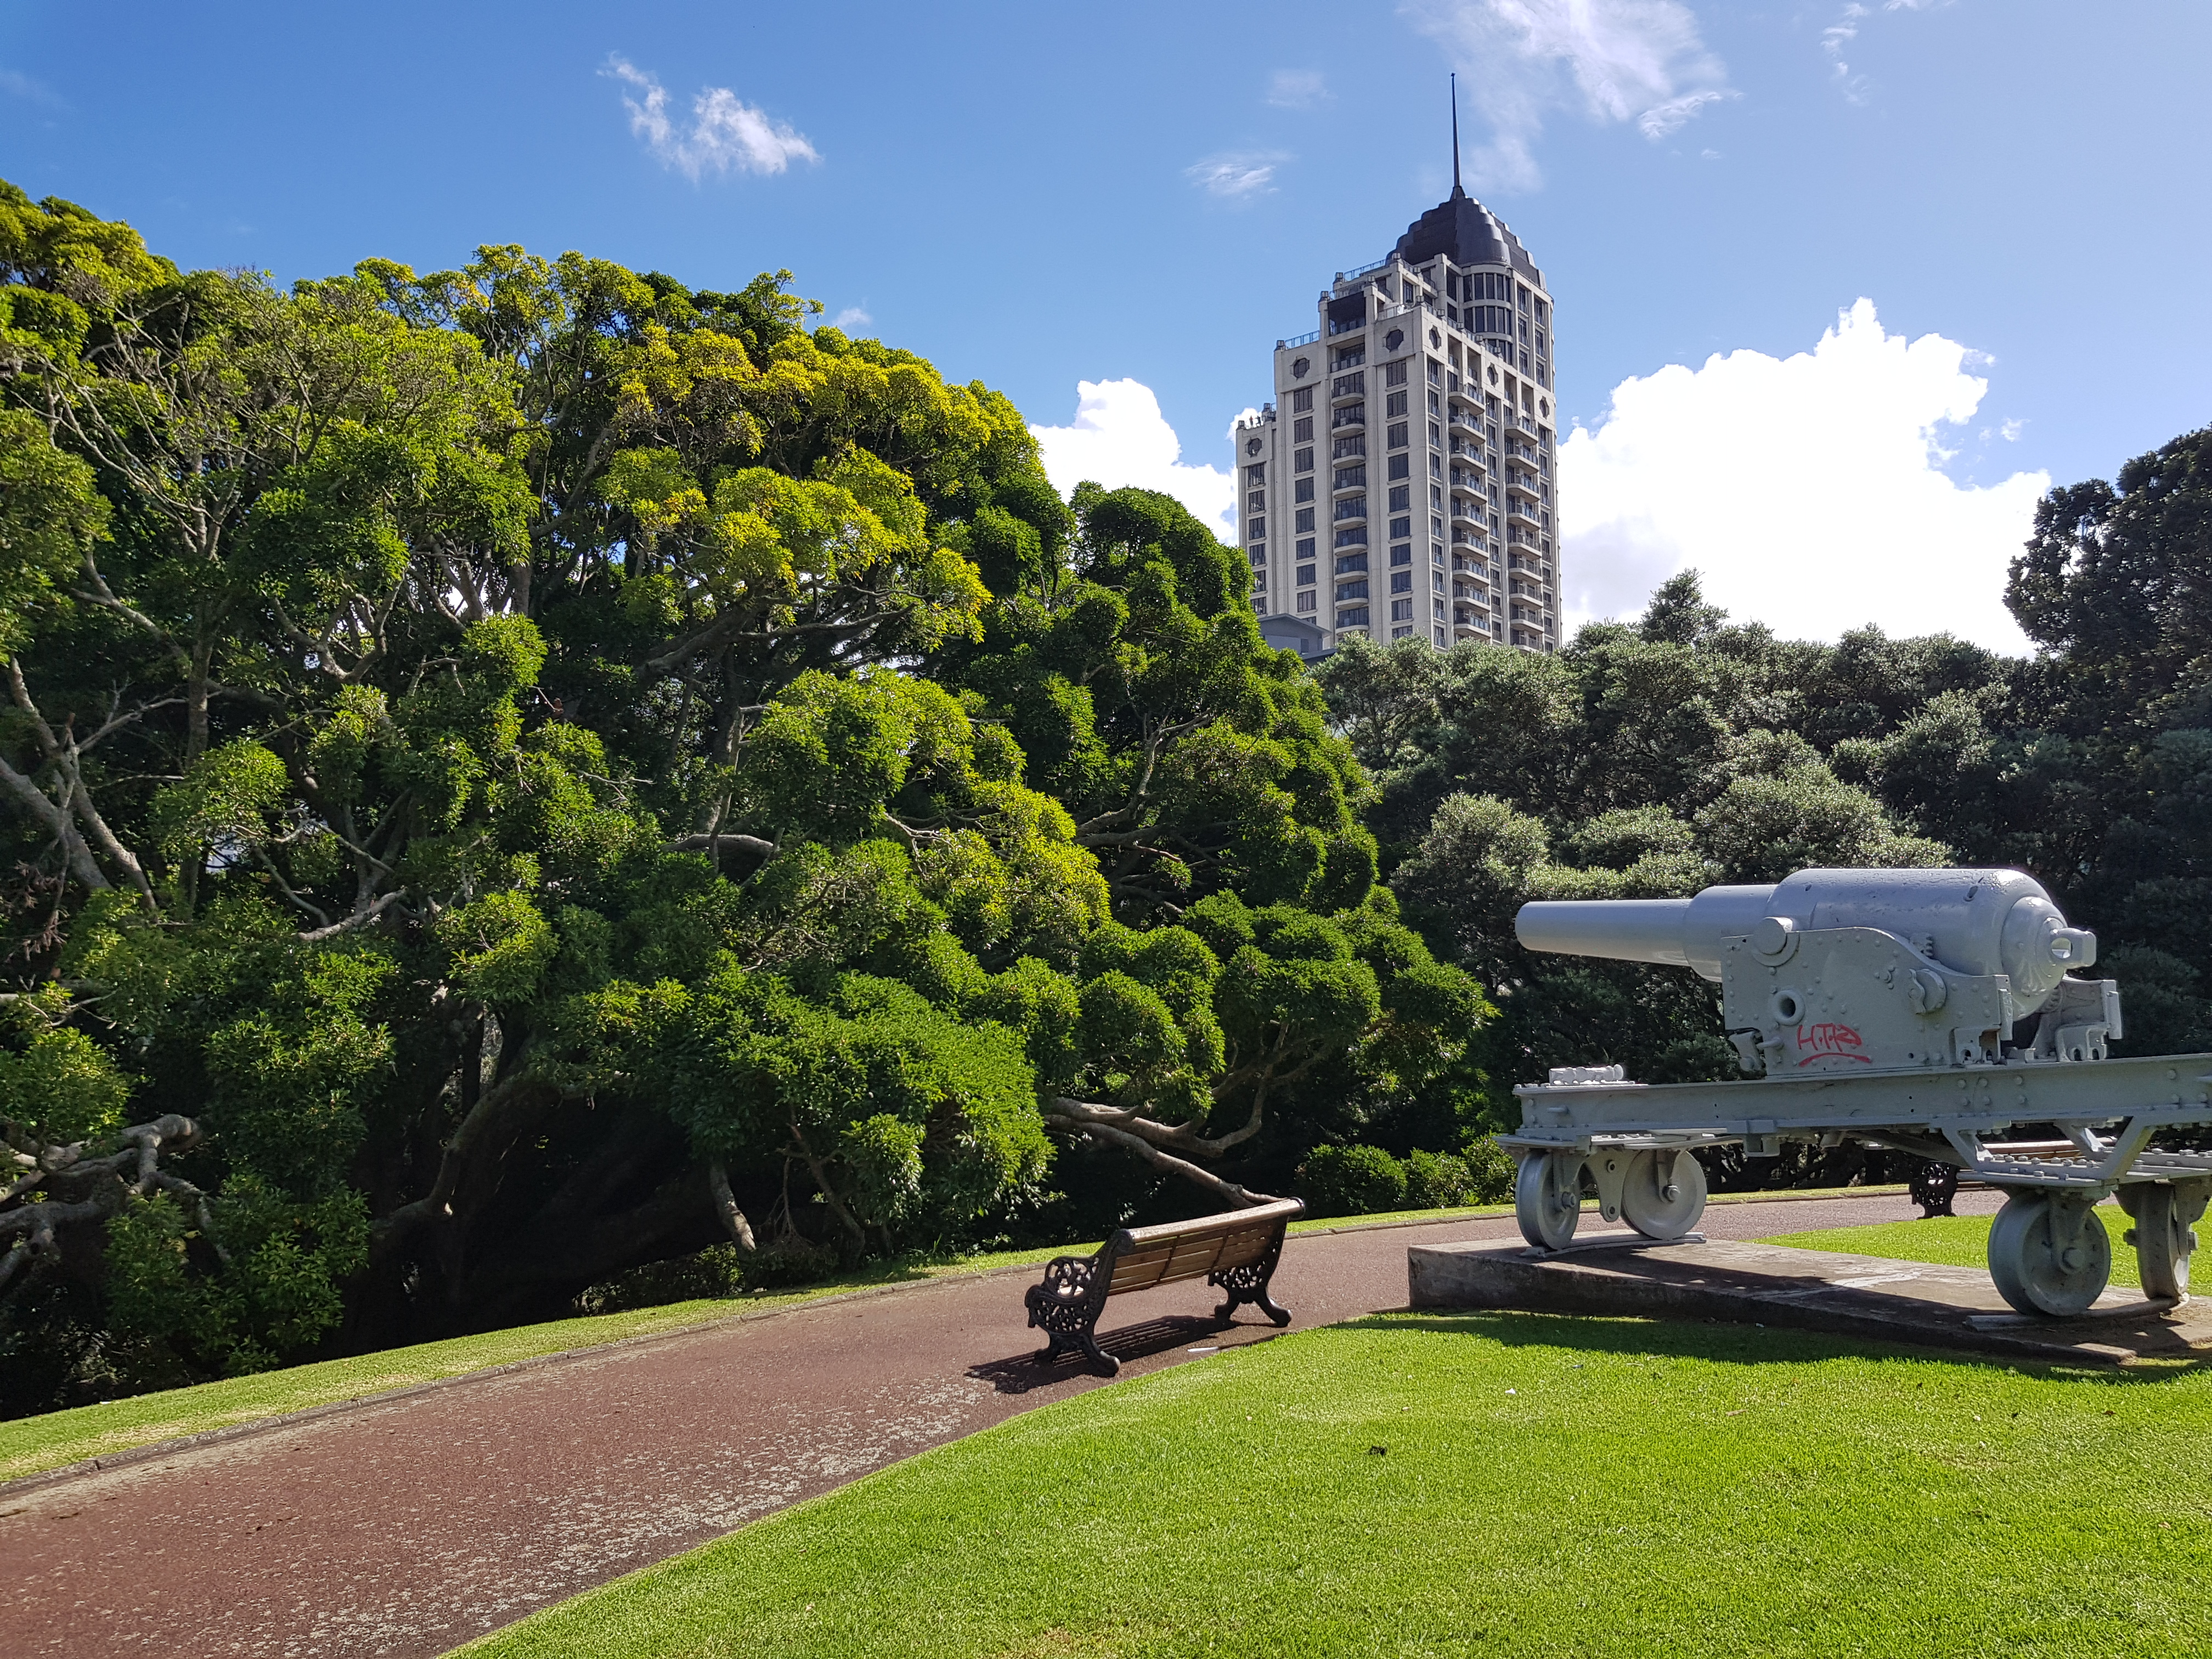 Albert park (and the canons against a Russian invasion^^)